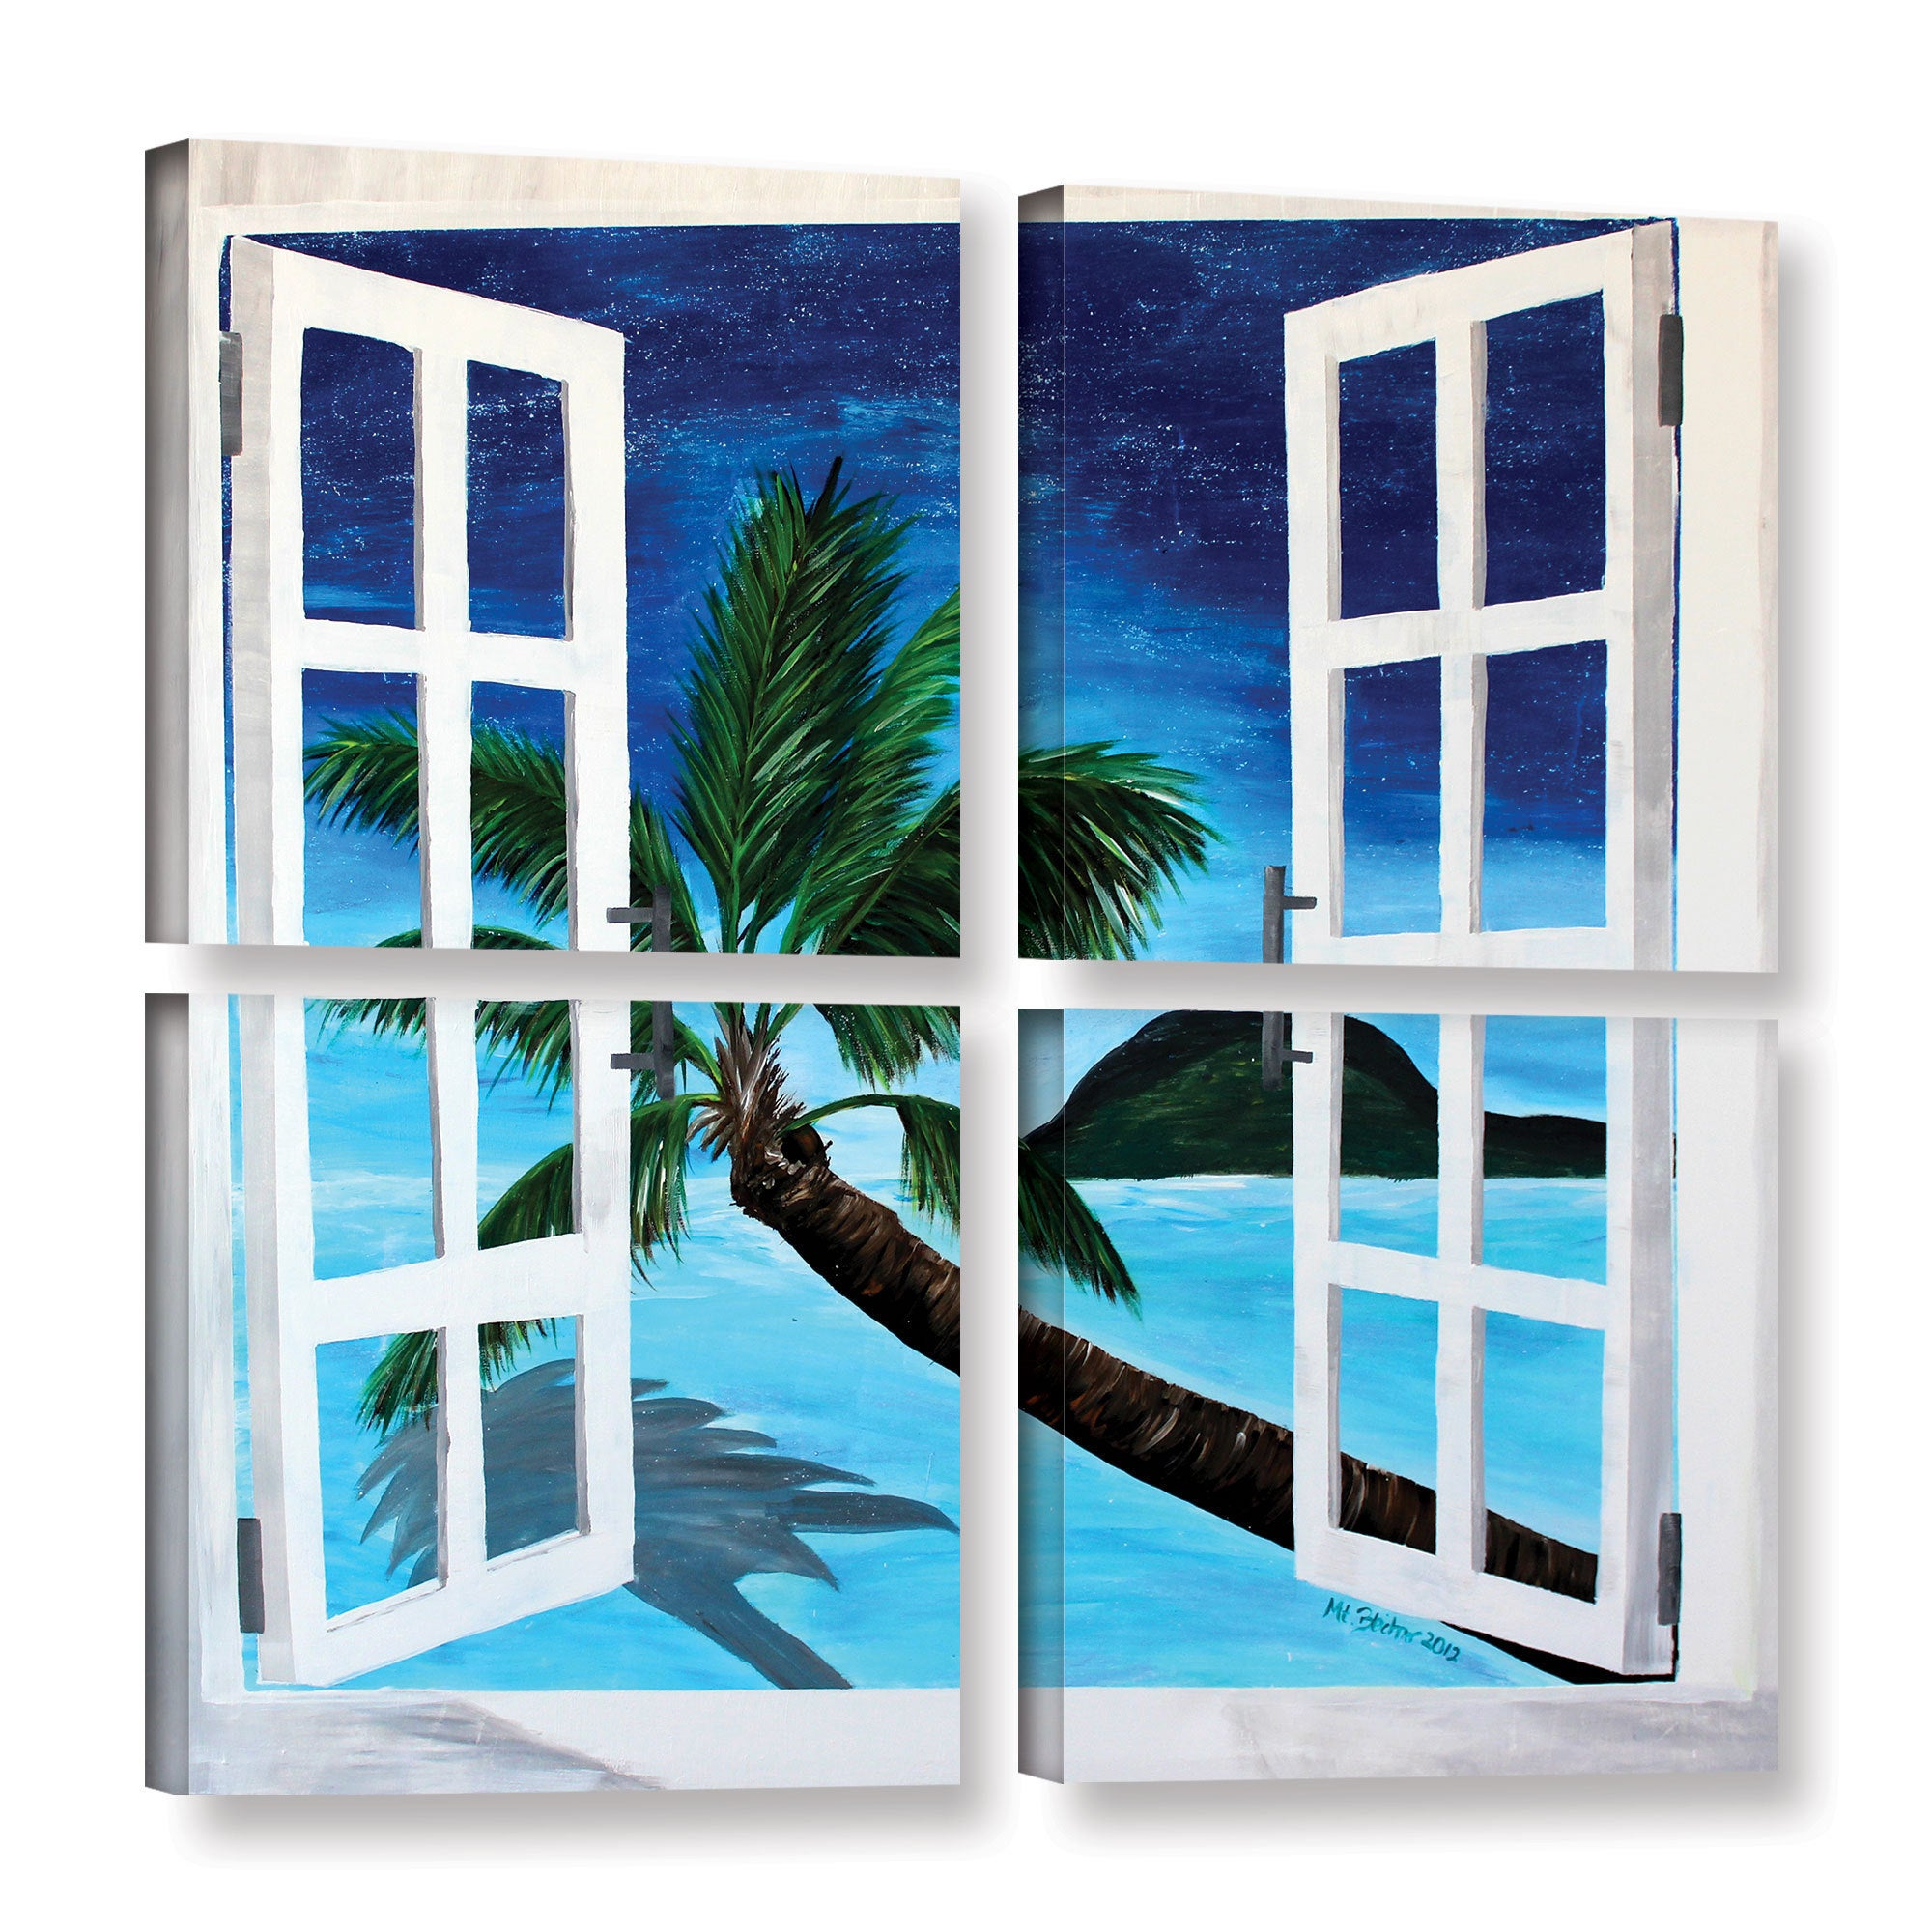 Shop Artwall Marcus Martina Bleichner S Palm View Window 4 Piece Gallery Wrapped Canvas Square Set Multi On Sale Overstock 11375346